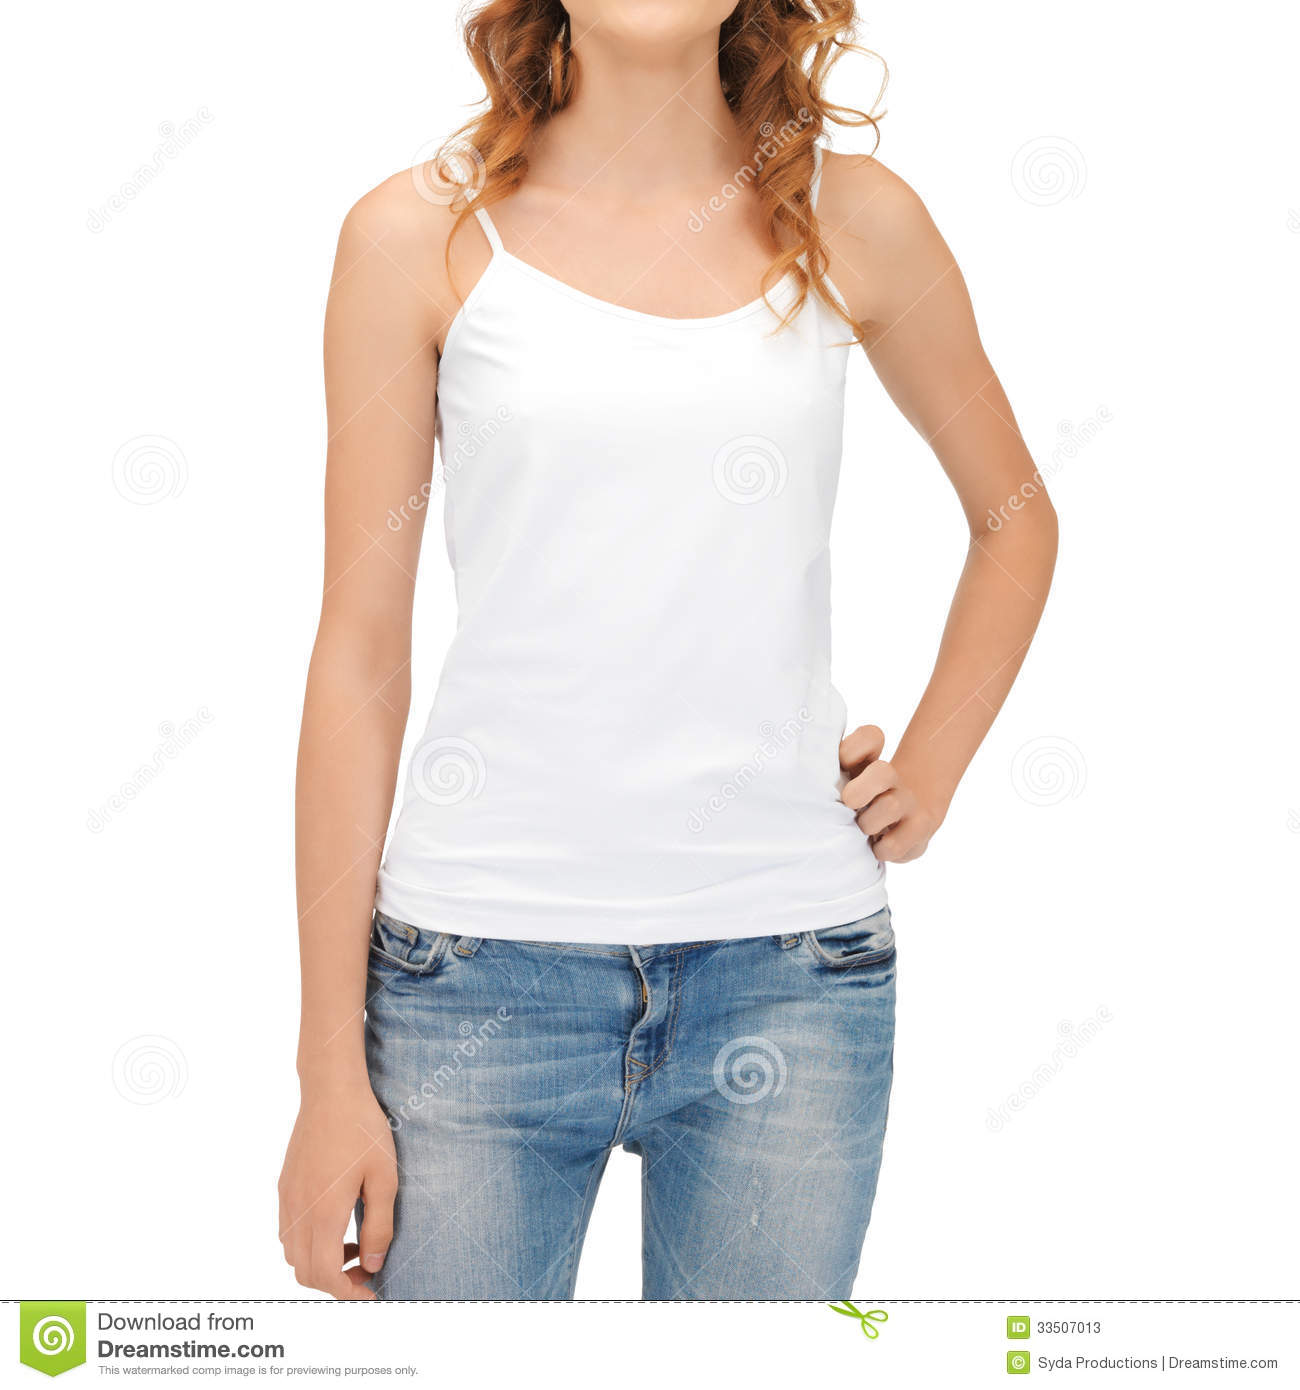 Shop Online at ganjamoney.tk for the Latest Womens White Tank Tops Shirts, Tunics, Blouses, Halter Tops & More Womens Tops. FREE SHIPPING AVAILABLE!